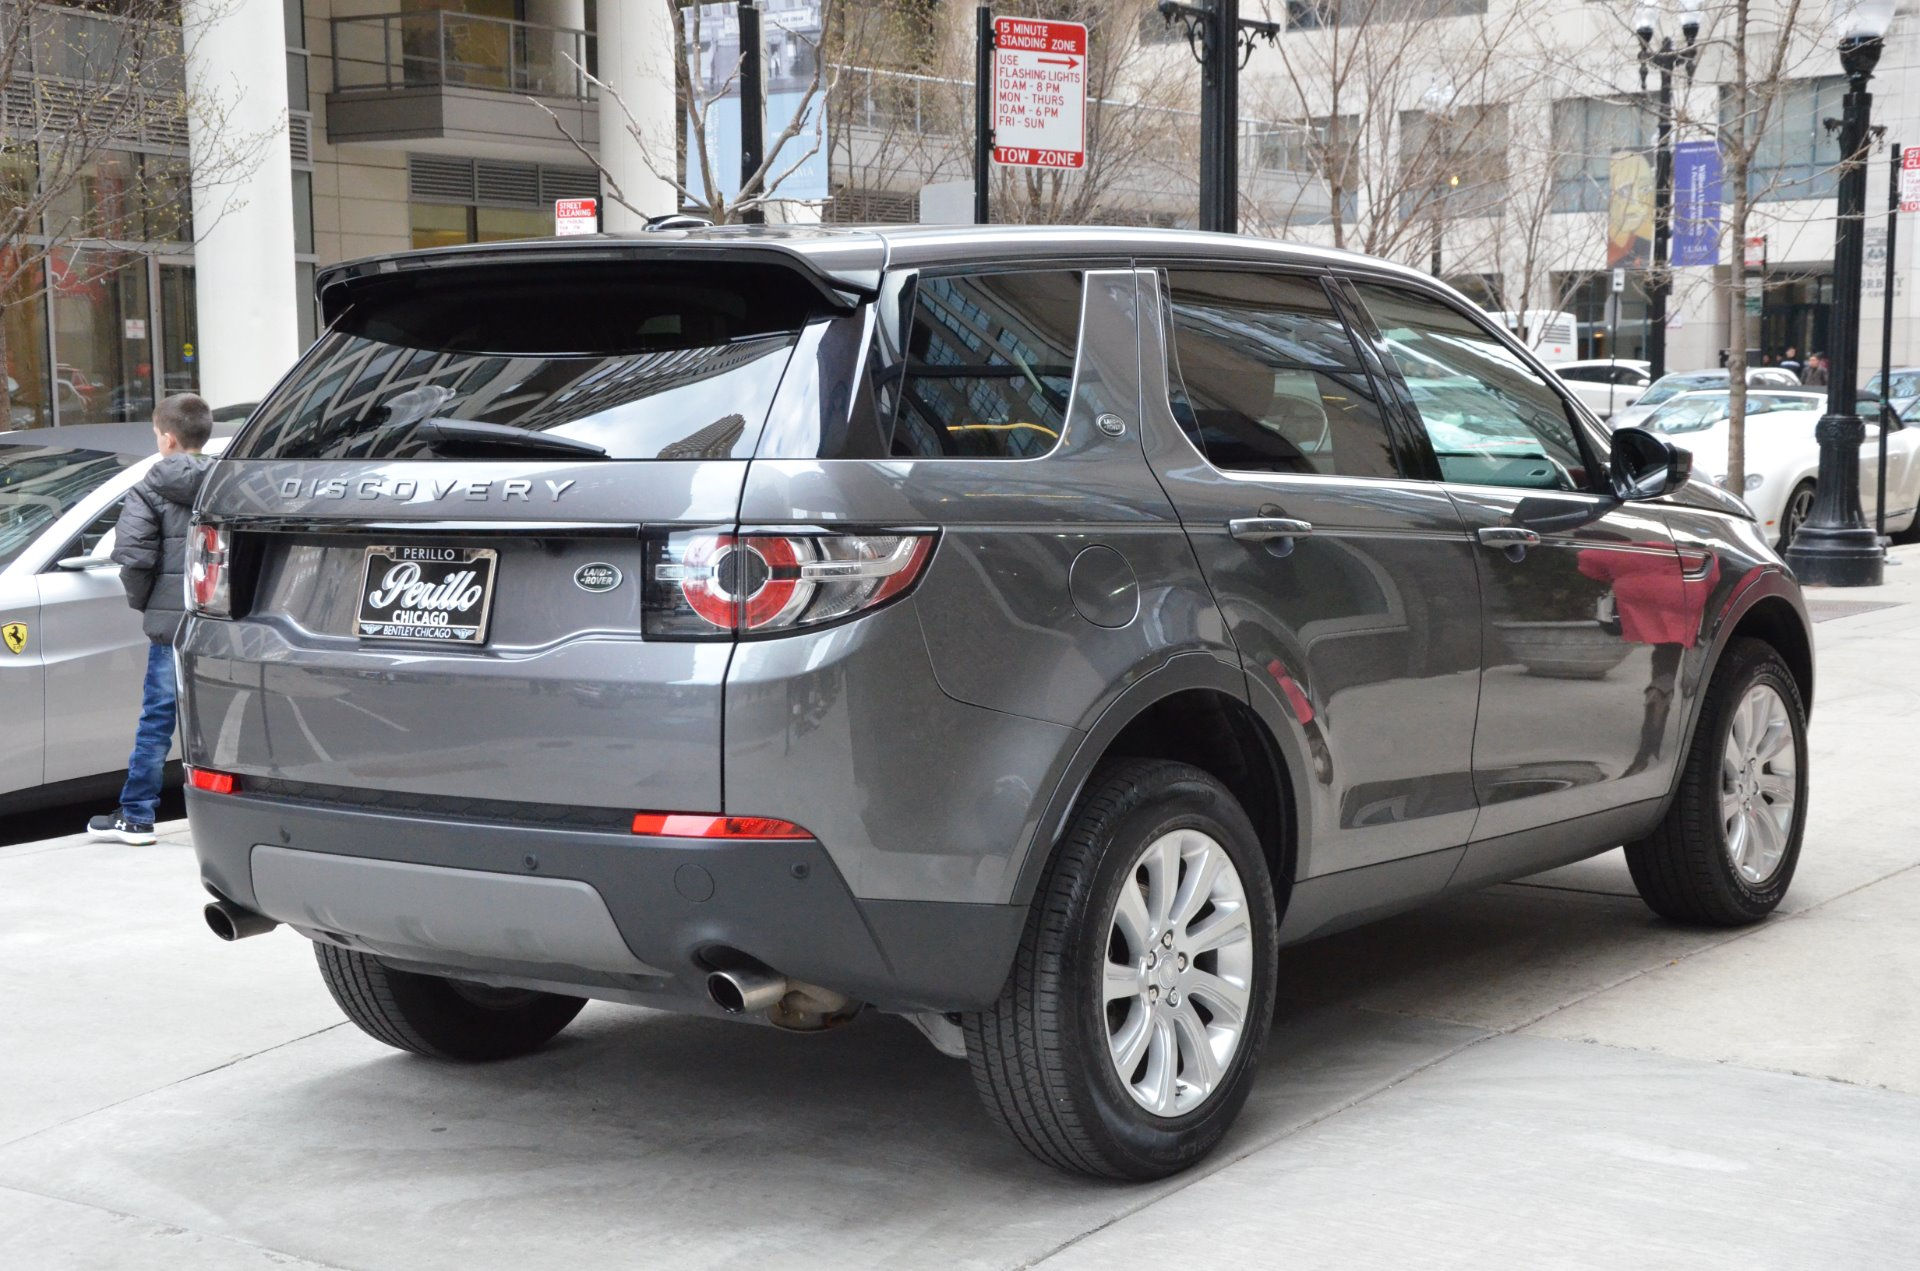 luxury chicago land landrover used rover patrick of new naperville dealer